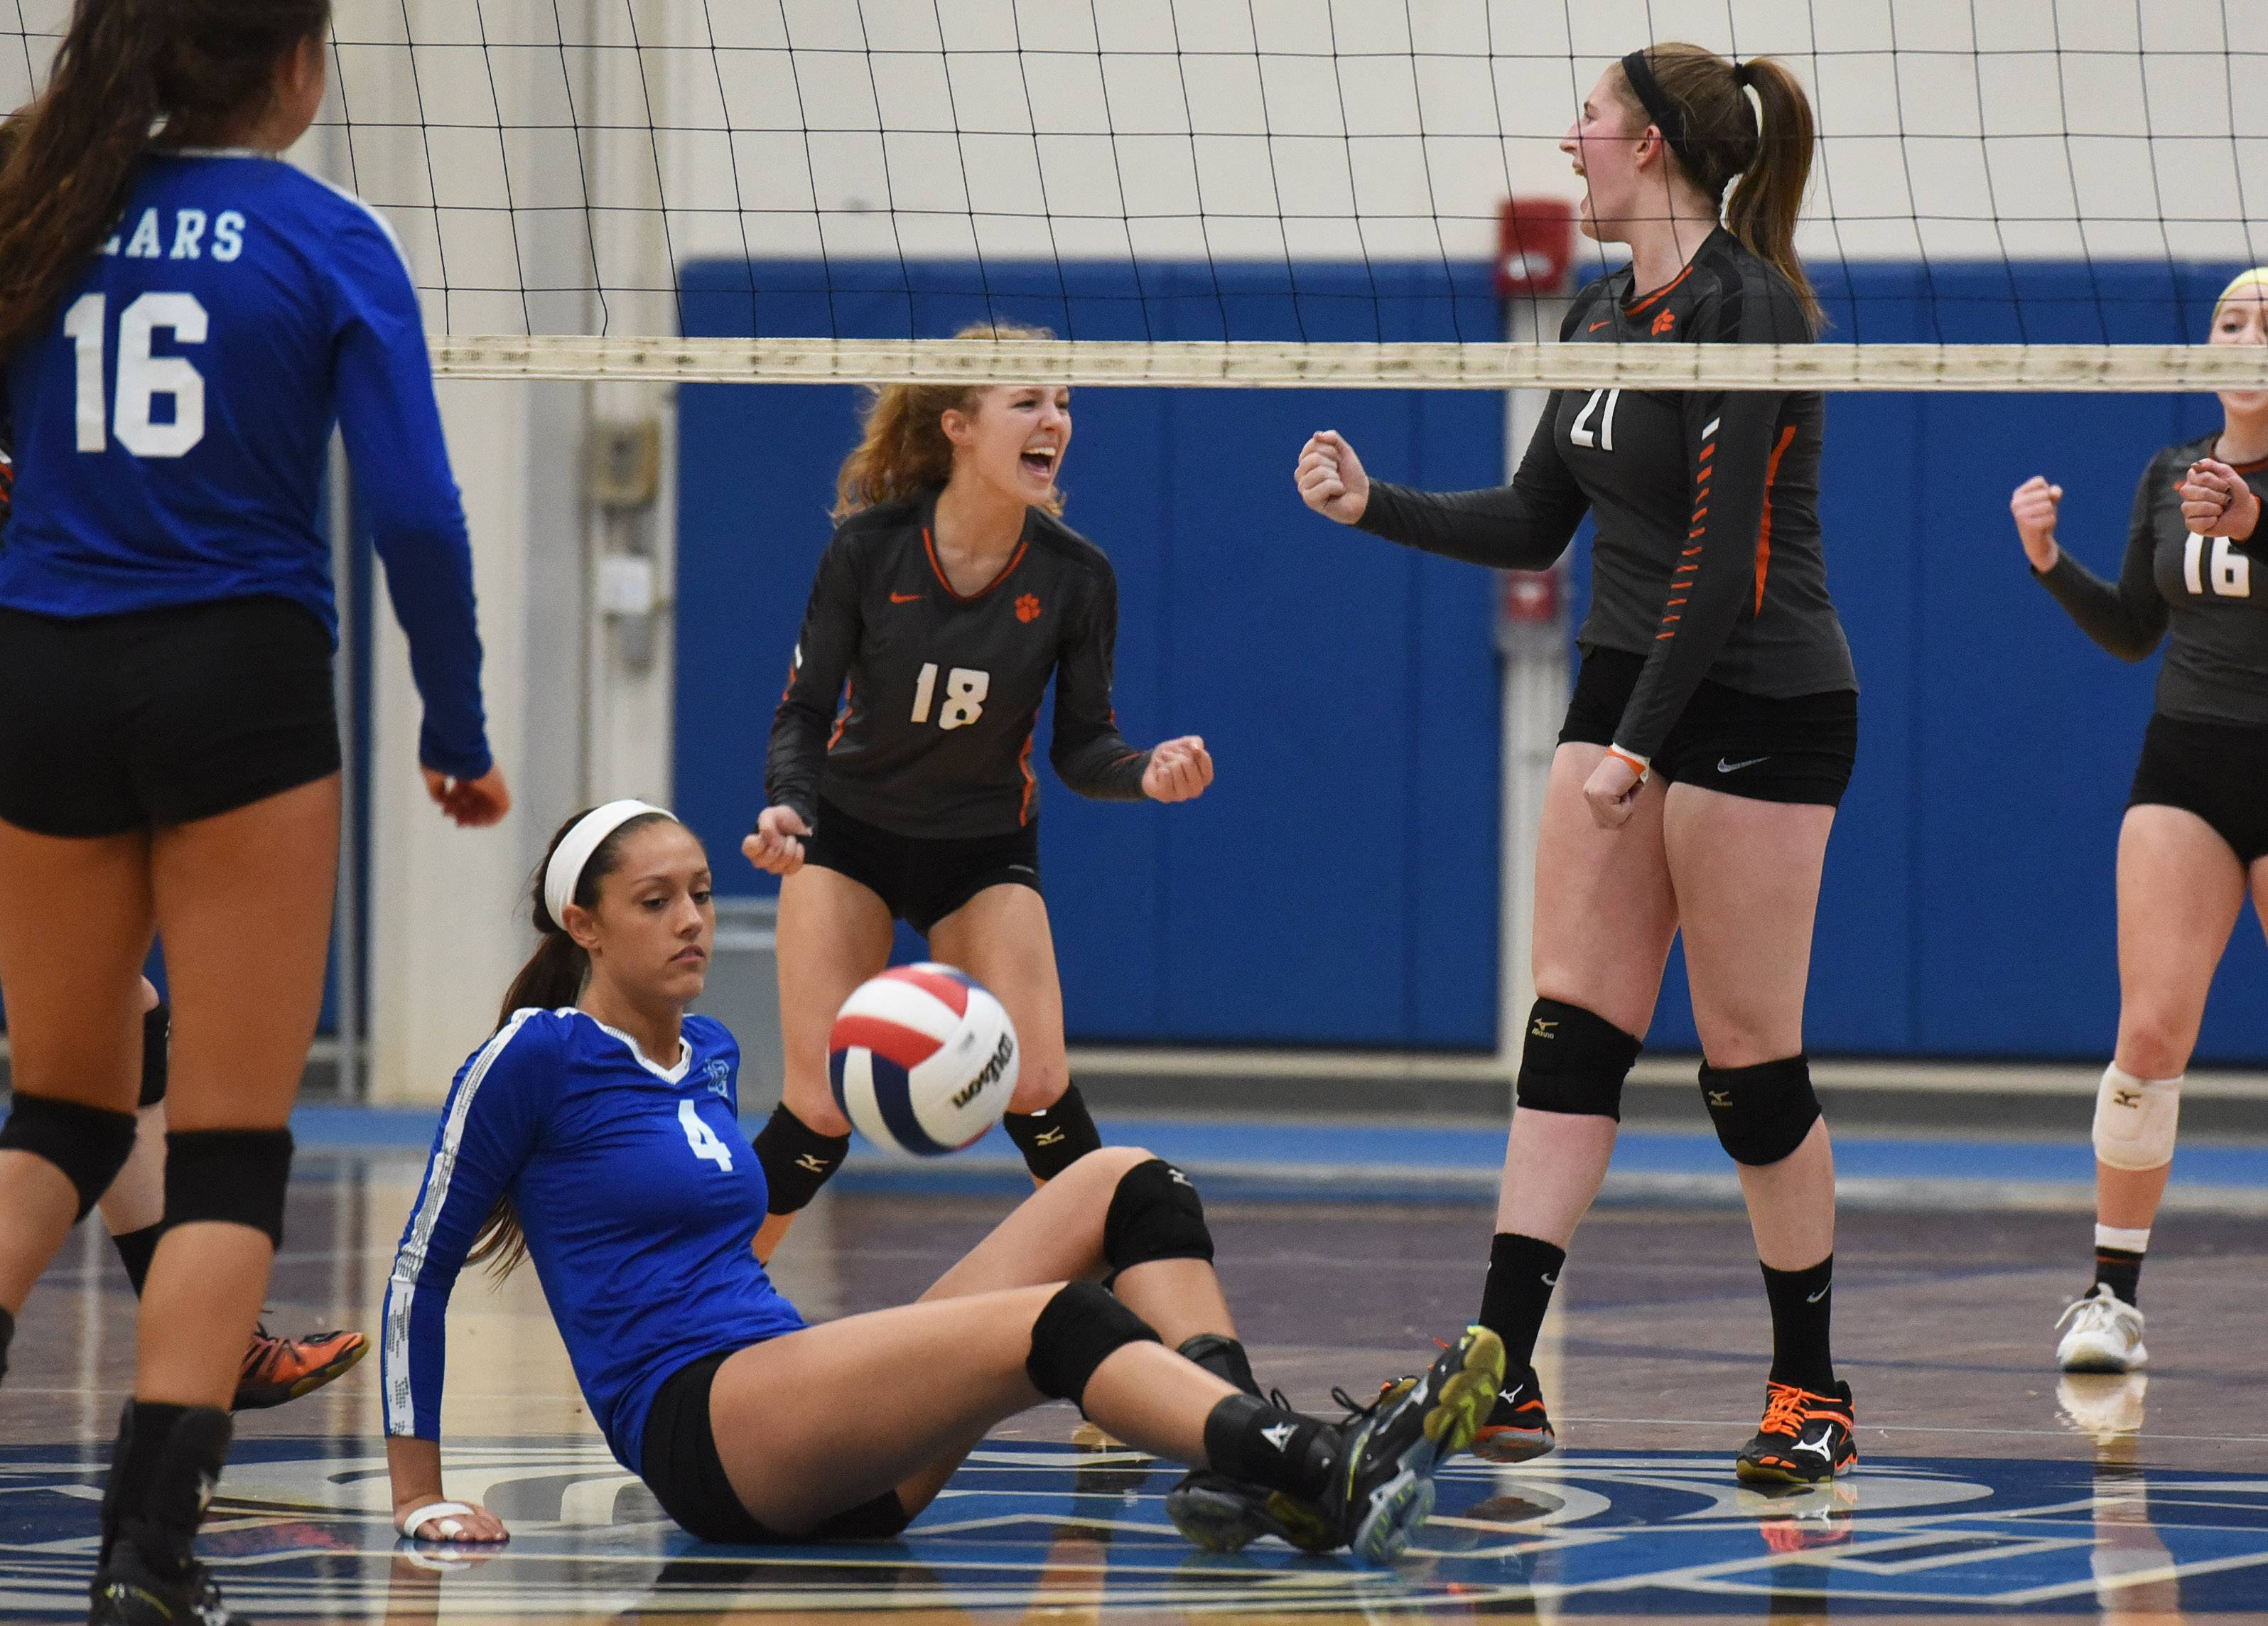 Lake Zurich's Jocelyn Leng (4) picks herself up as Libertyville's Cat Hebbeln (18) and Maggie Evers (21) celebrate a point during Wednesday's volleyball match in Lake Zurich.